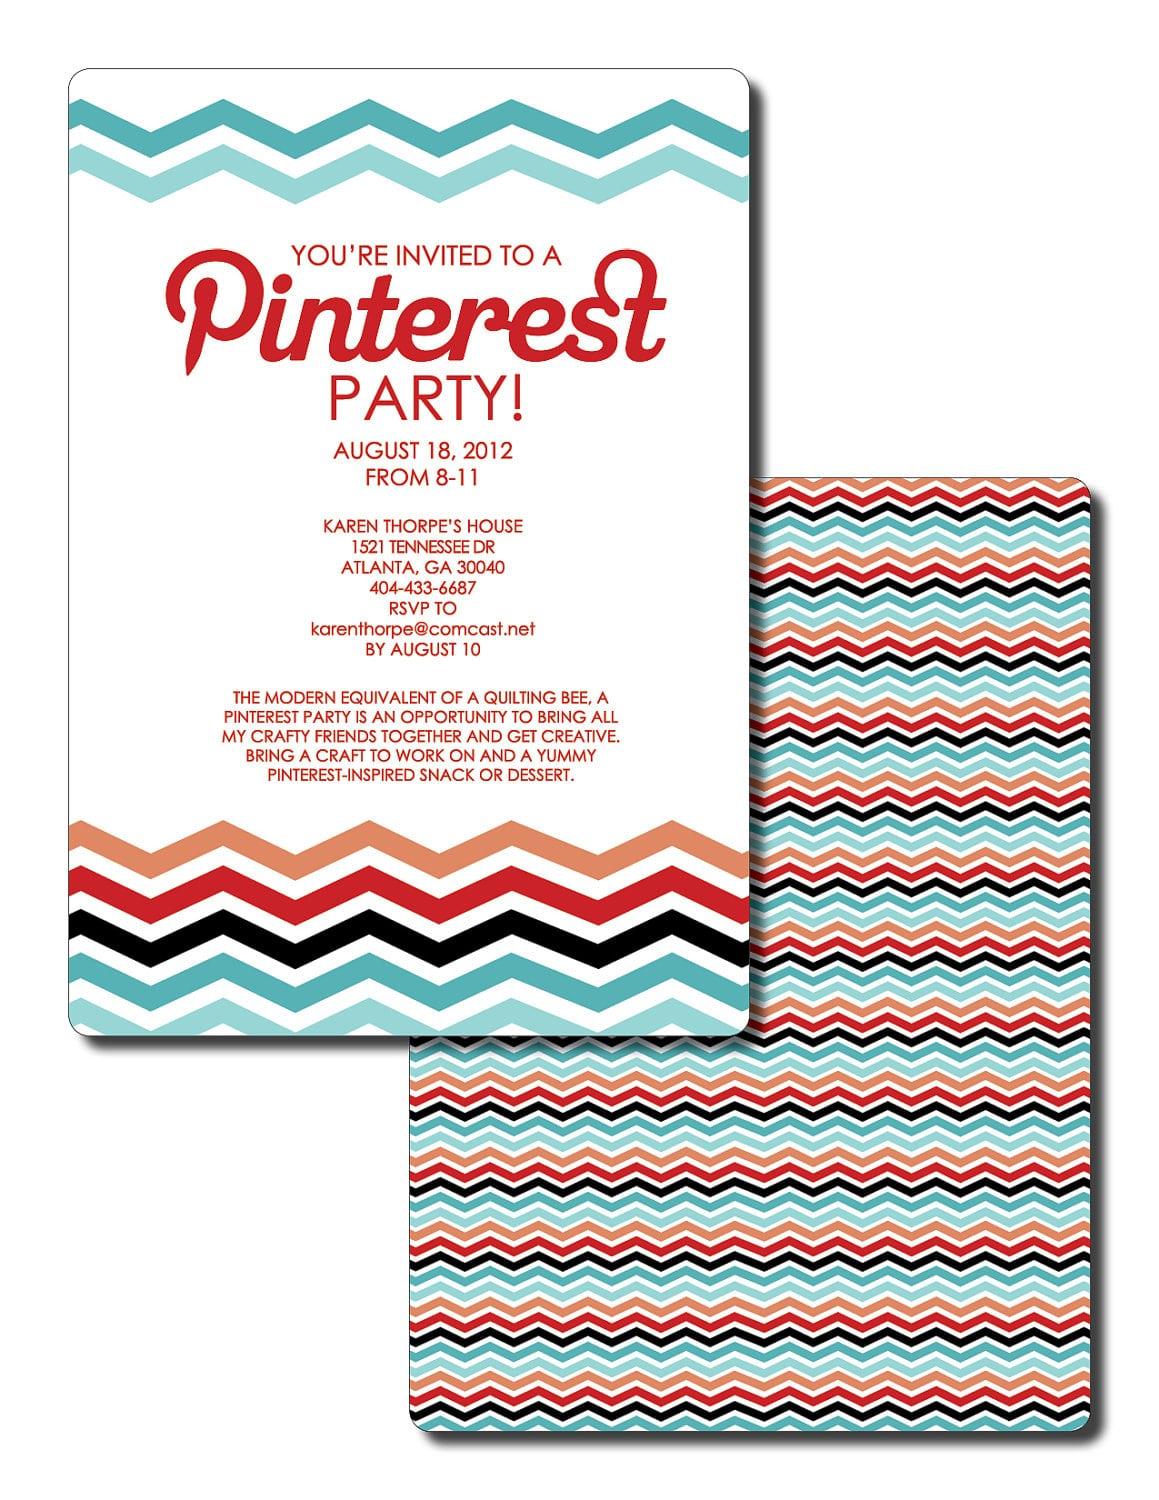 Pinterest Party! Such A Great Idea! Everyone Brings A Pinned Snack